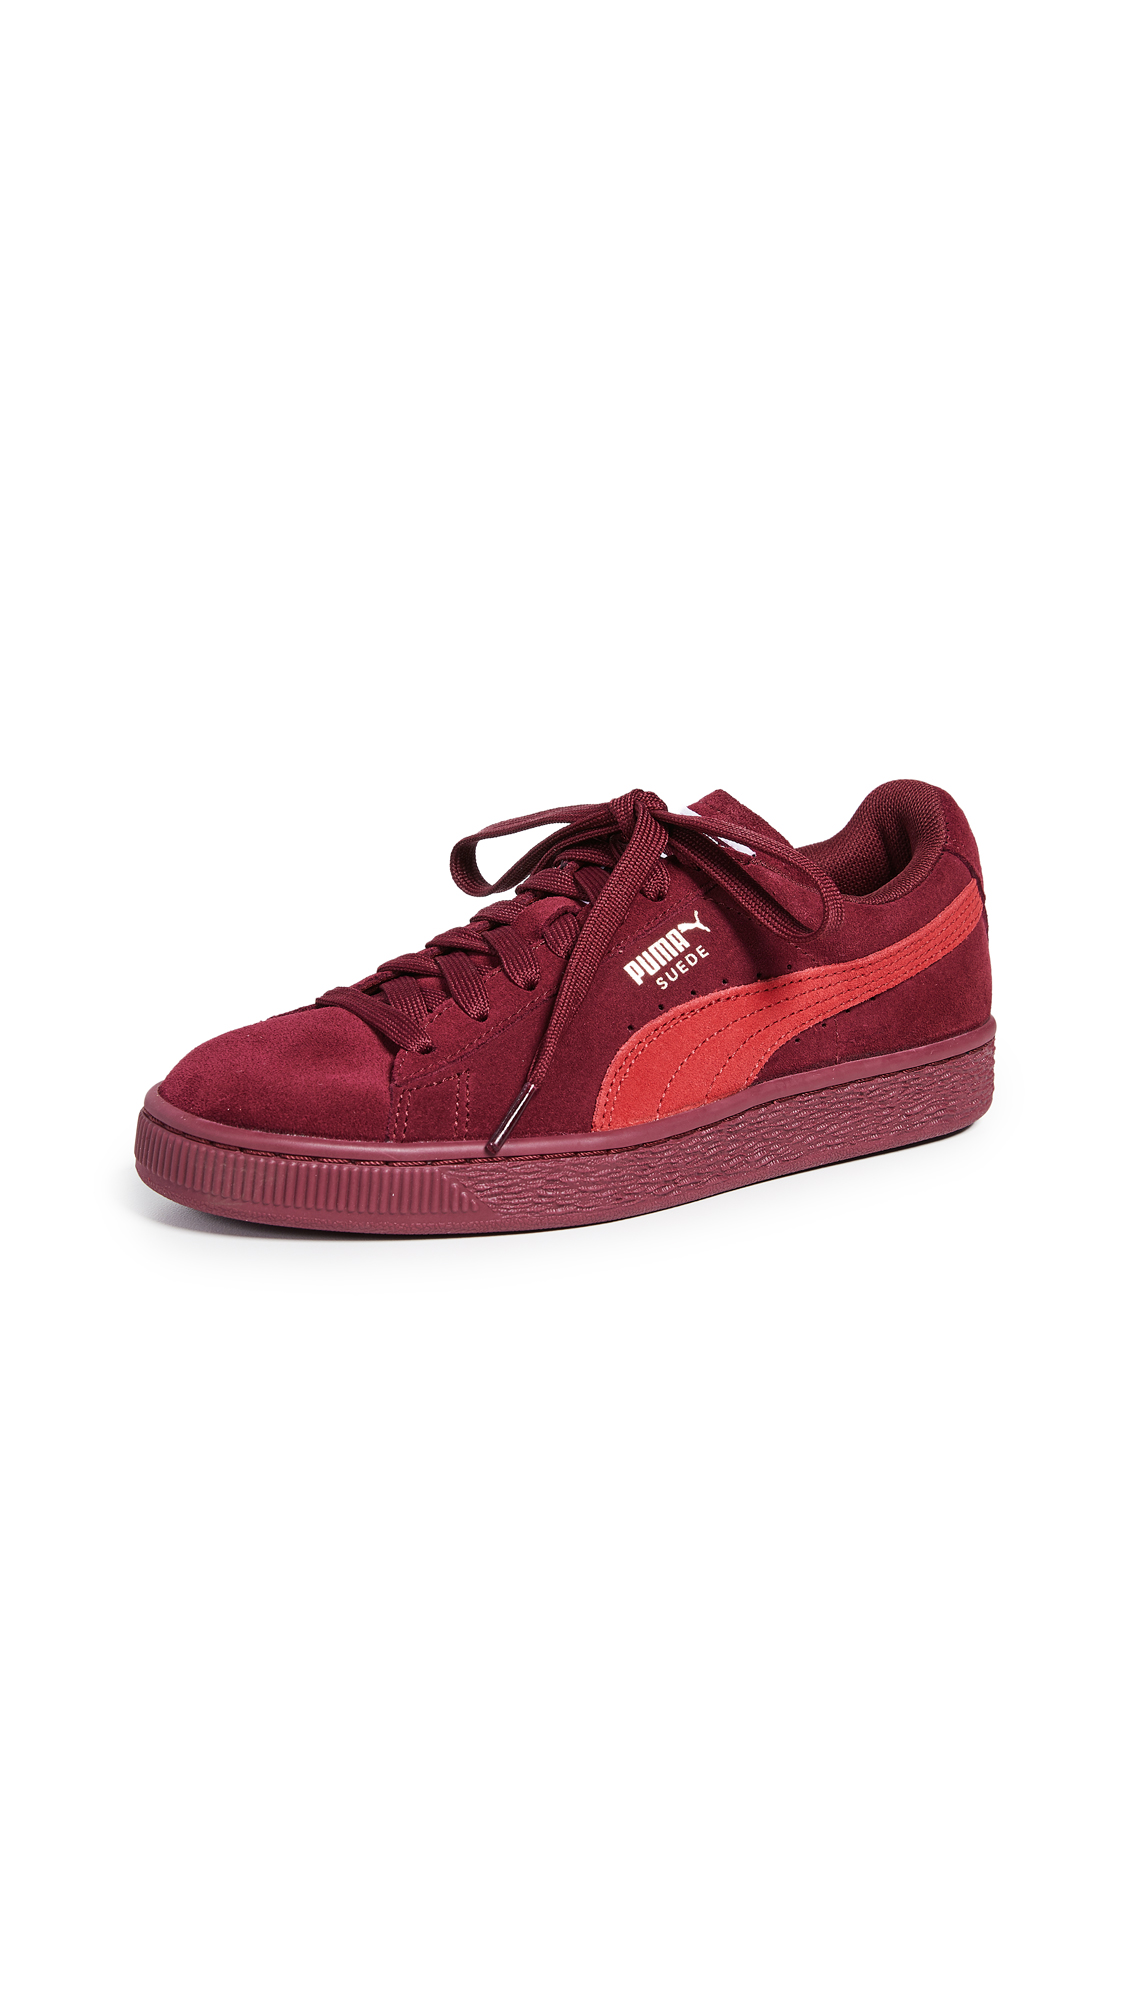 PUMA Suede Classic Sneakers - Pomegranate/Ribbon Red